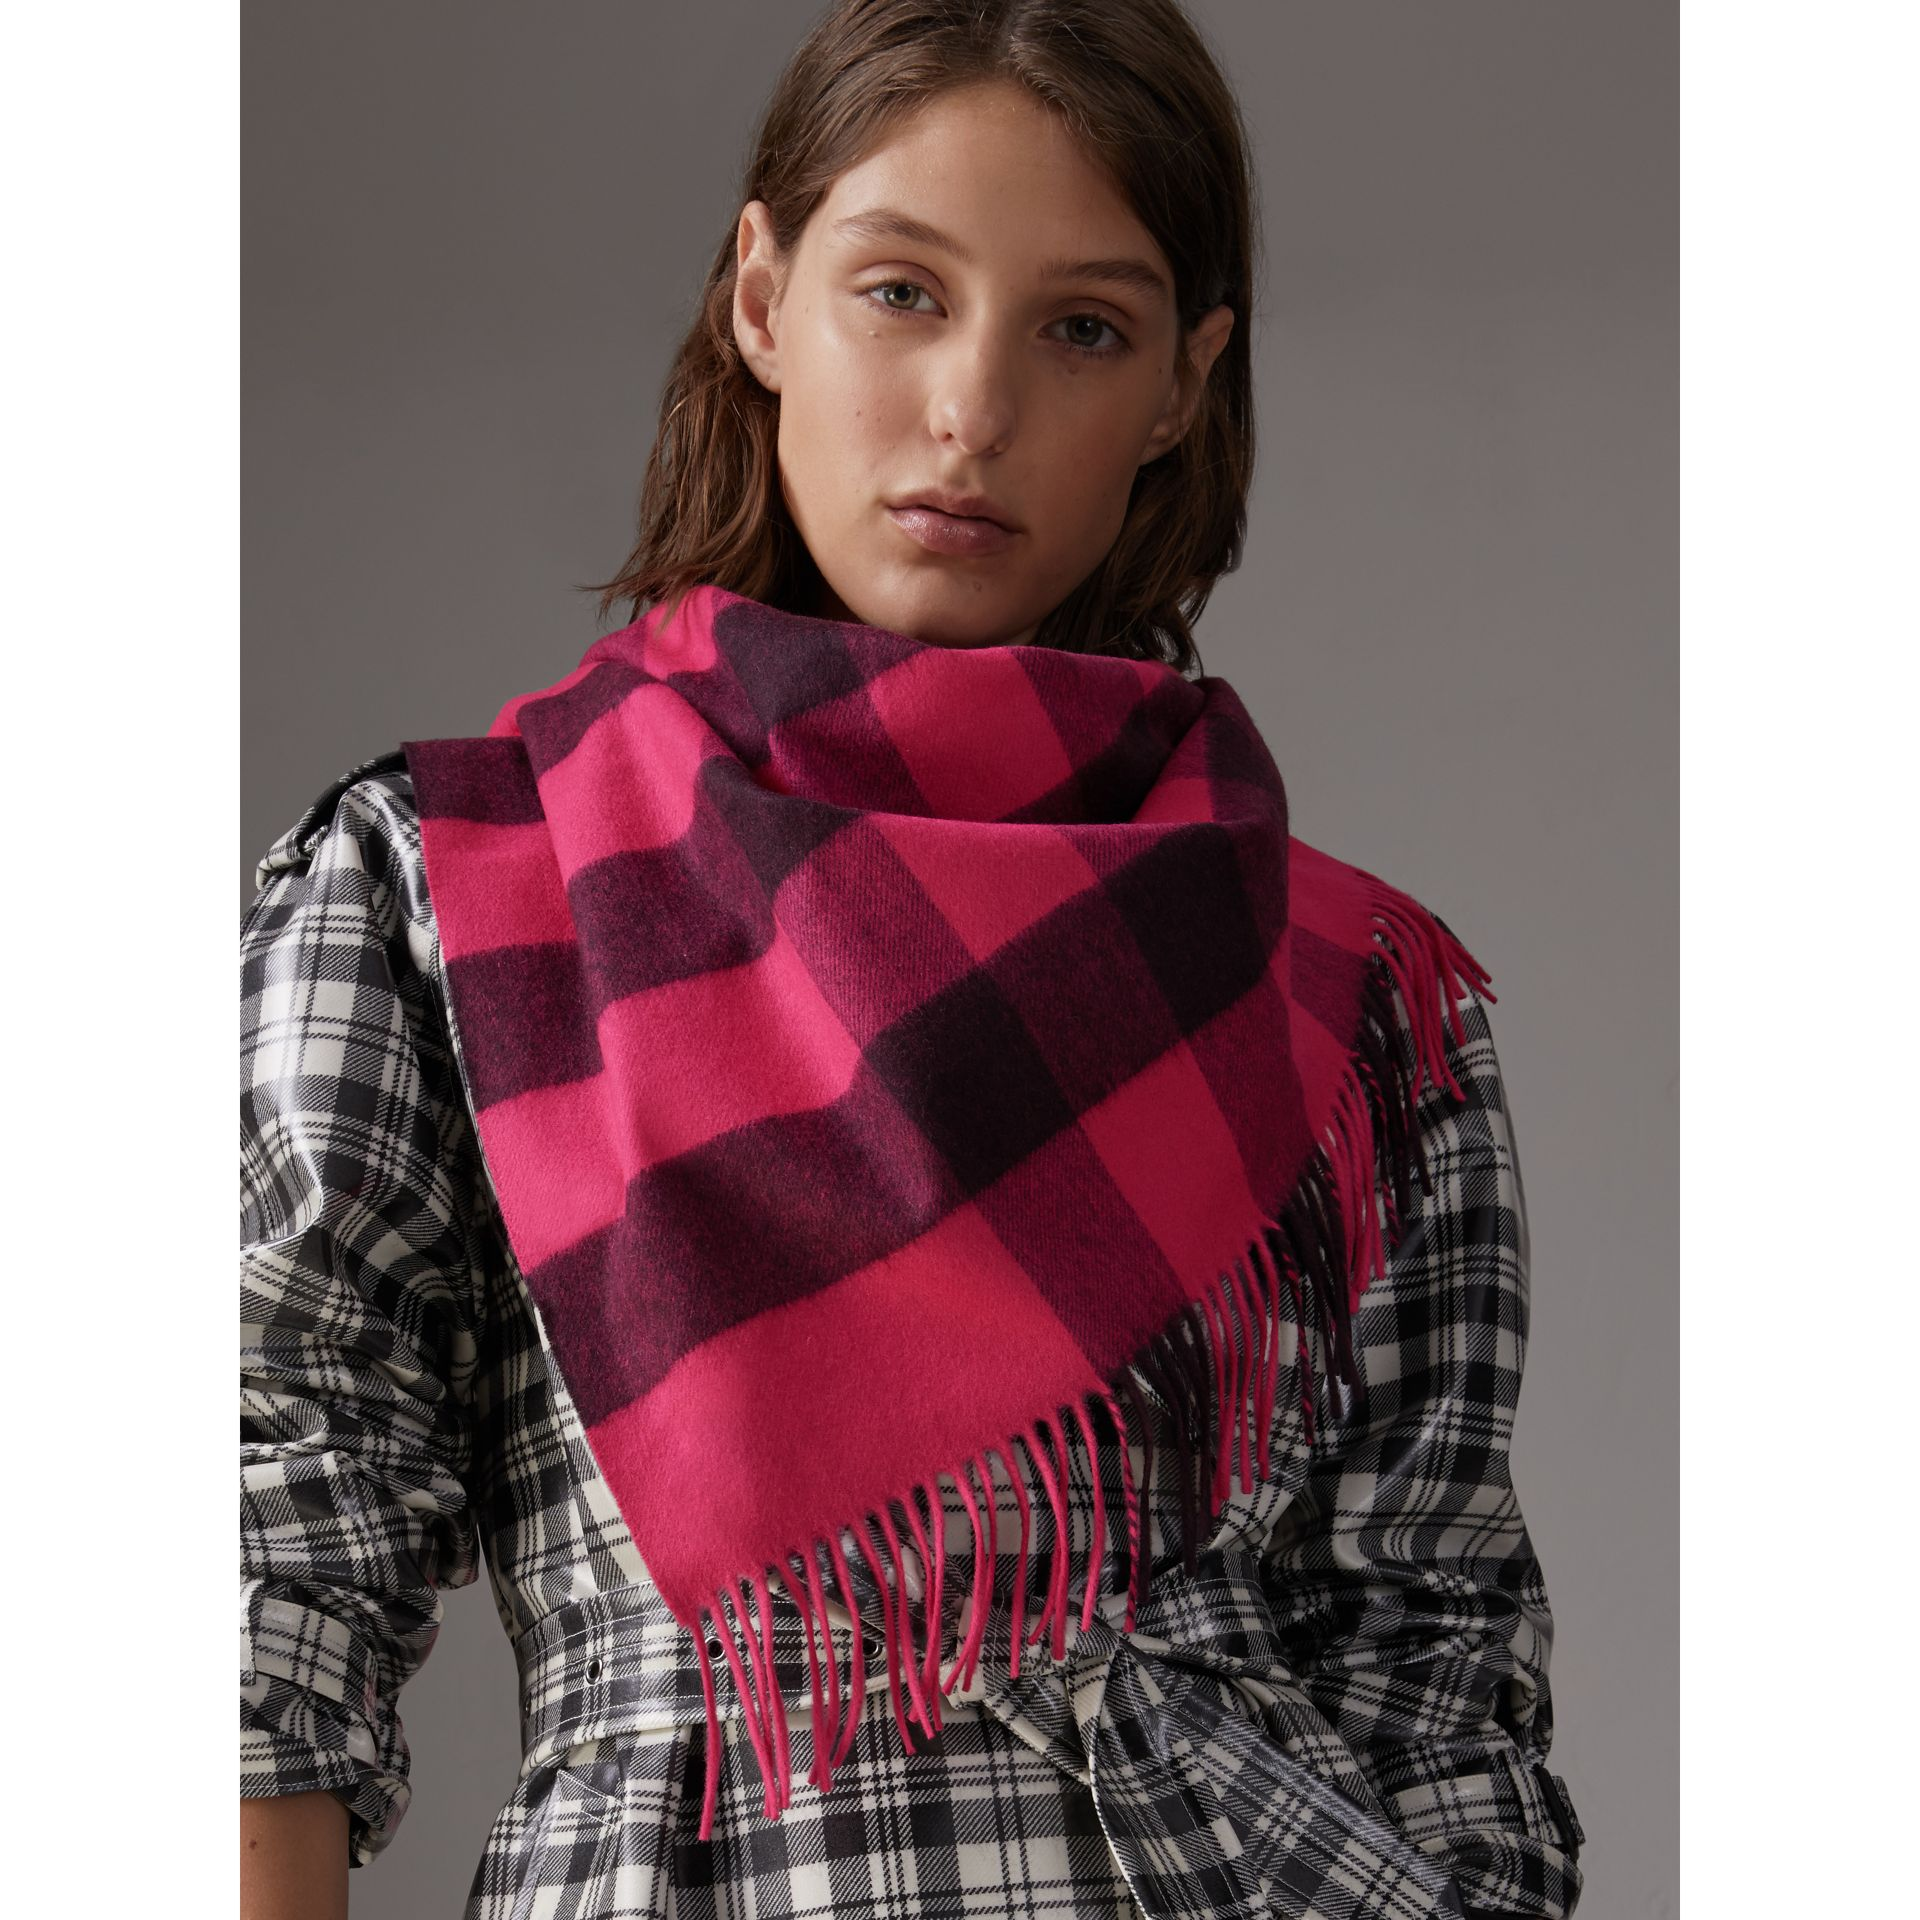 Bandana Burberry en cachemire à motif check (Rose Pink Vif) | Burberry - photo de la galerie 6